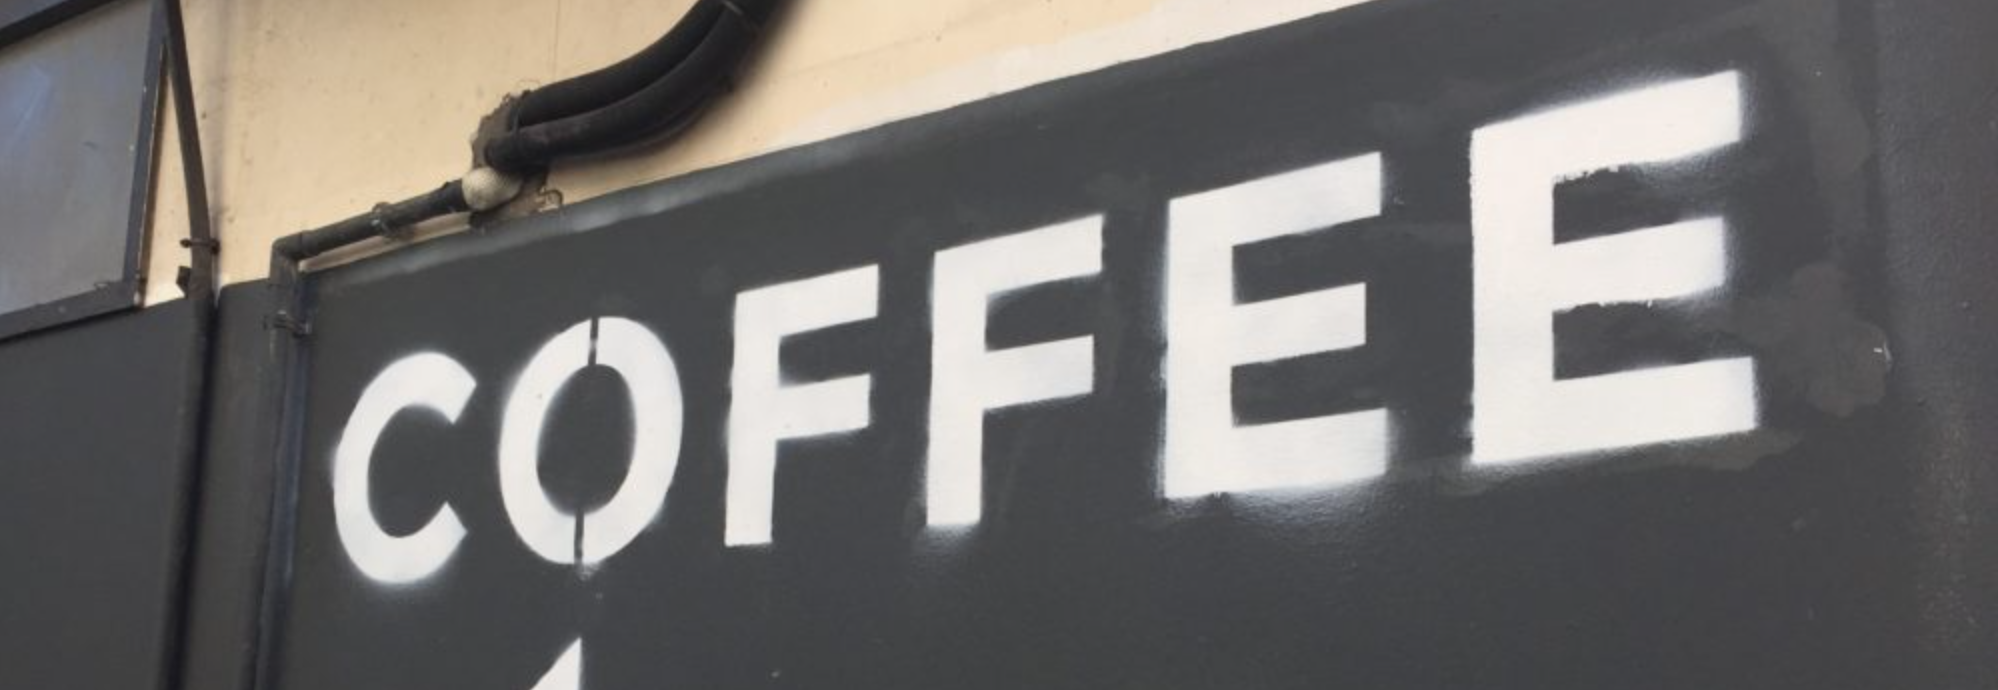 Newest Coffee Shop from NZ